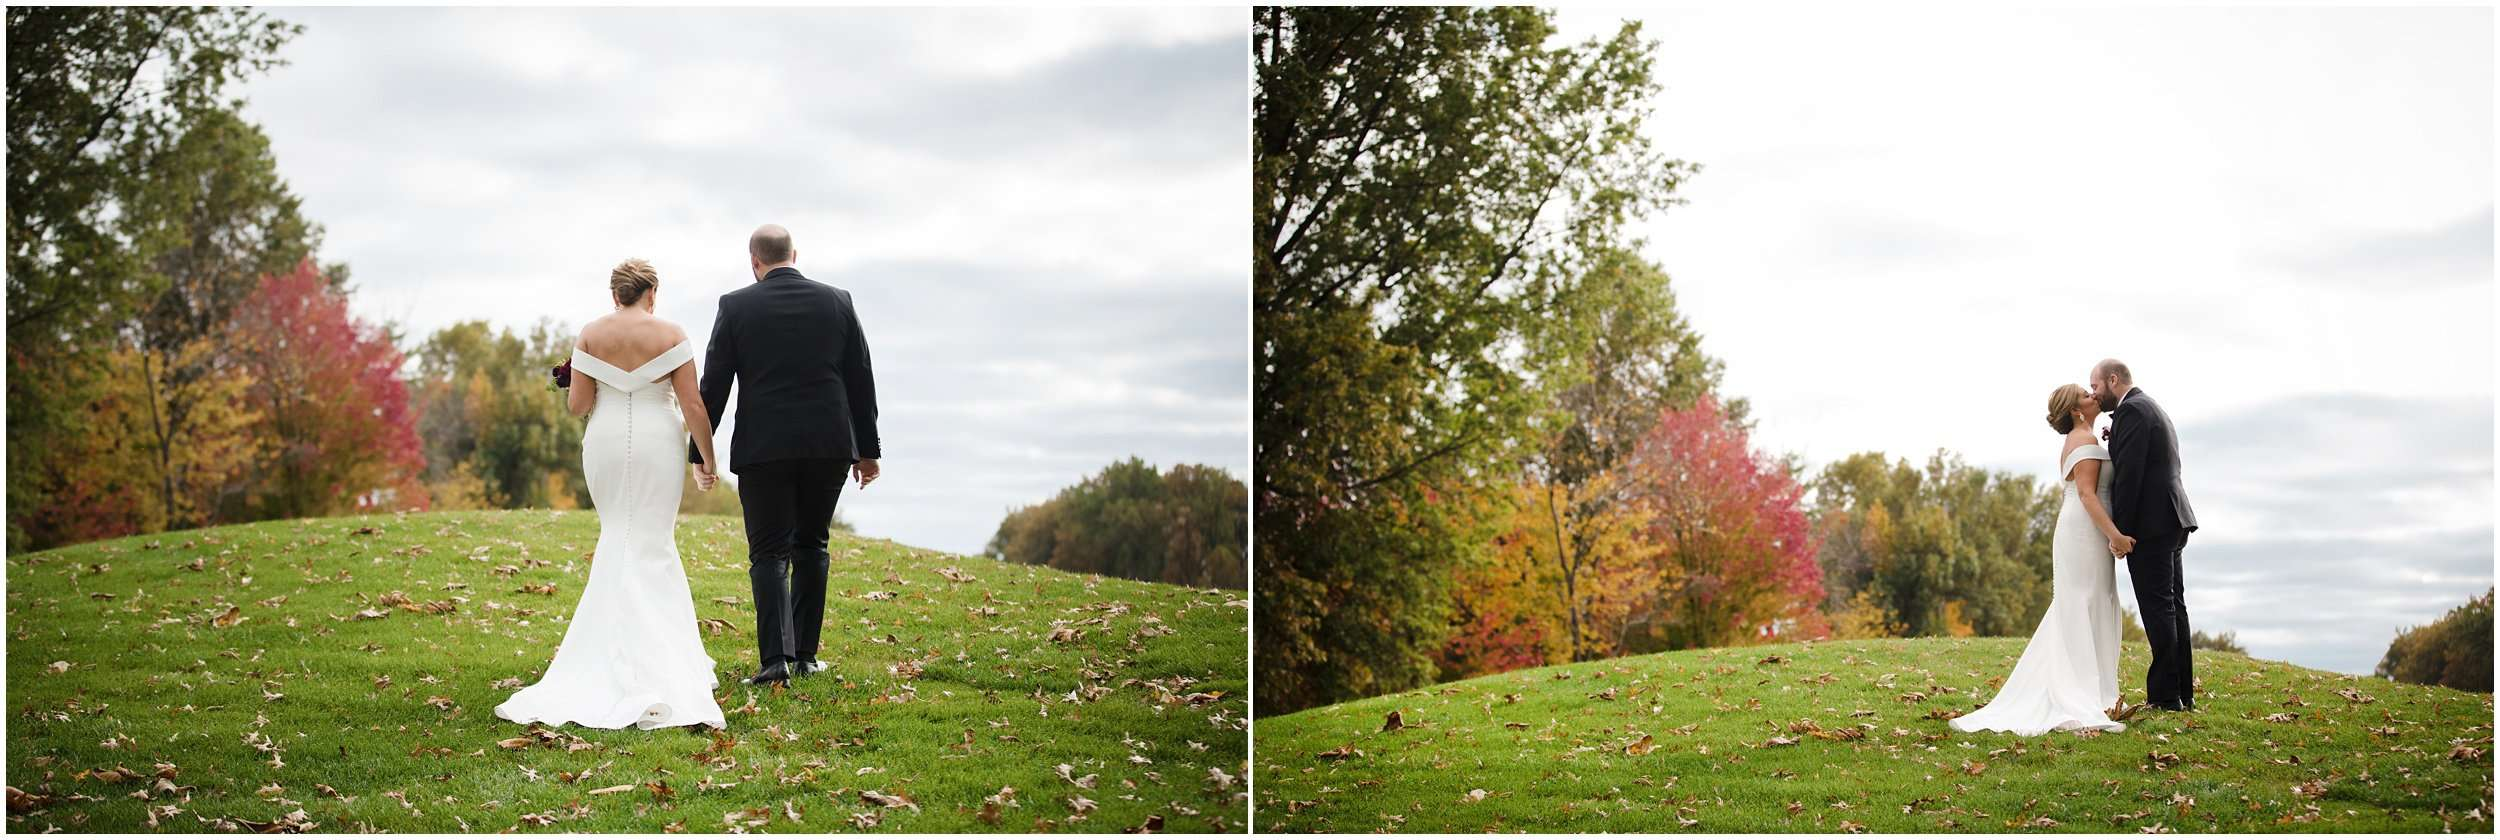 Fall Wedding at the Jefferson Golf and Country Club | Ohio Wedding Photography 186